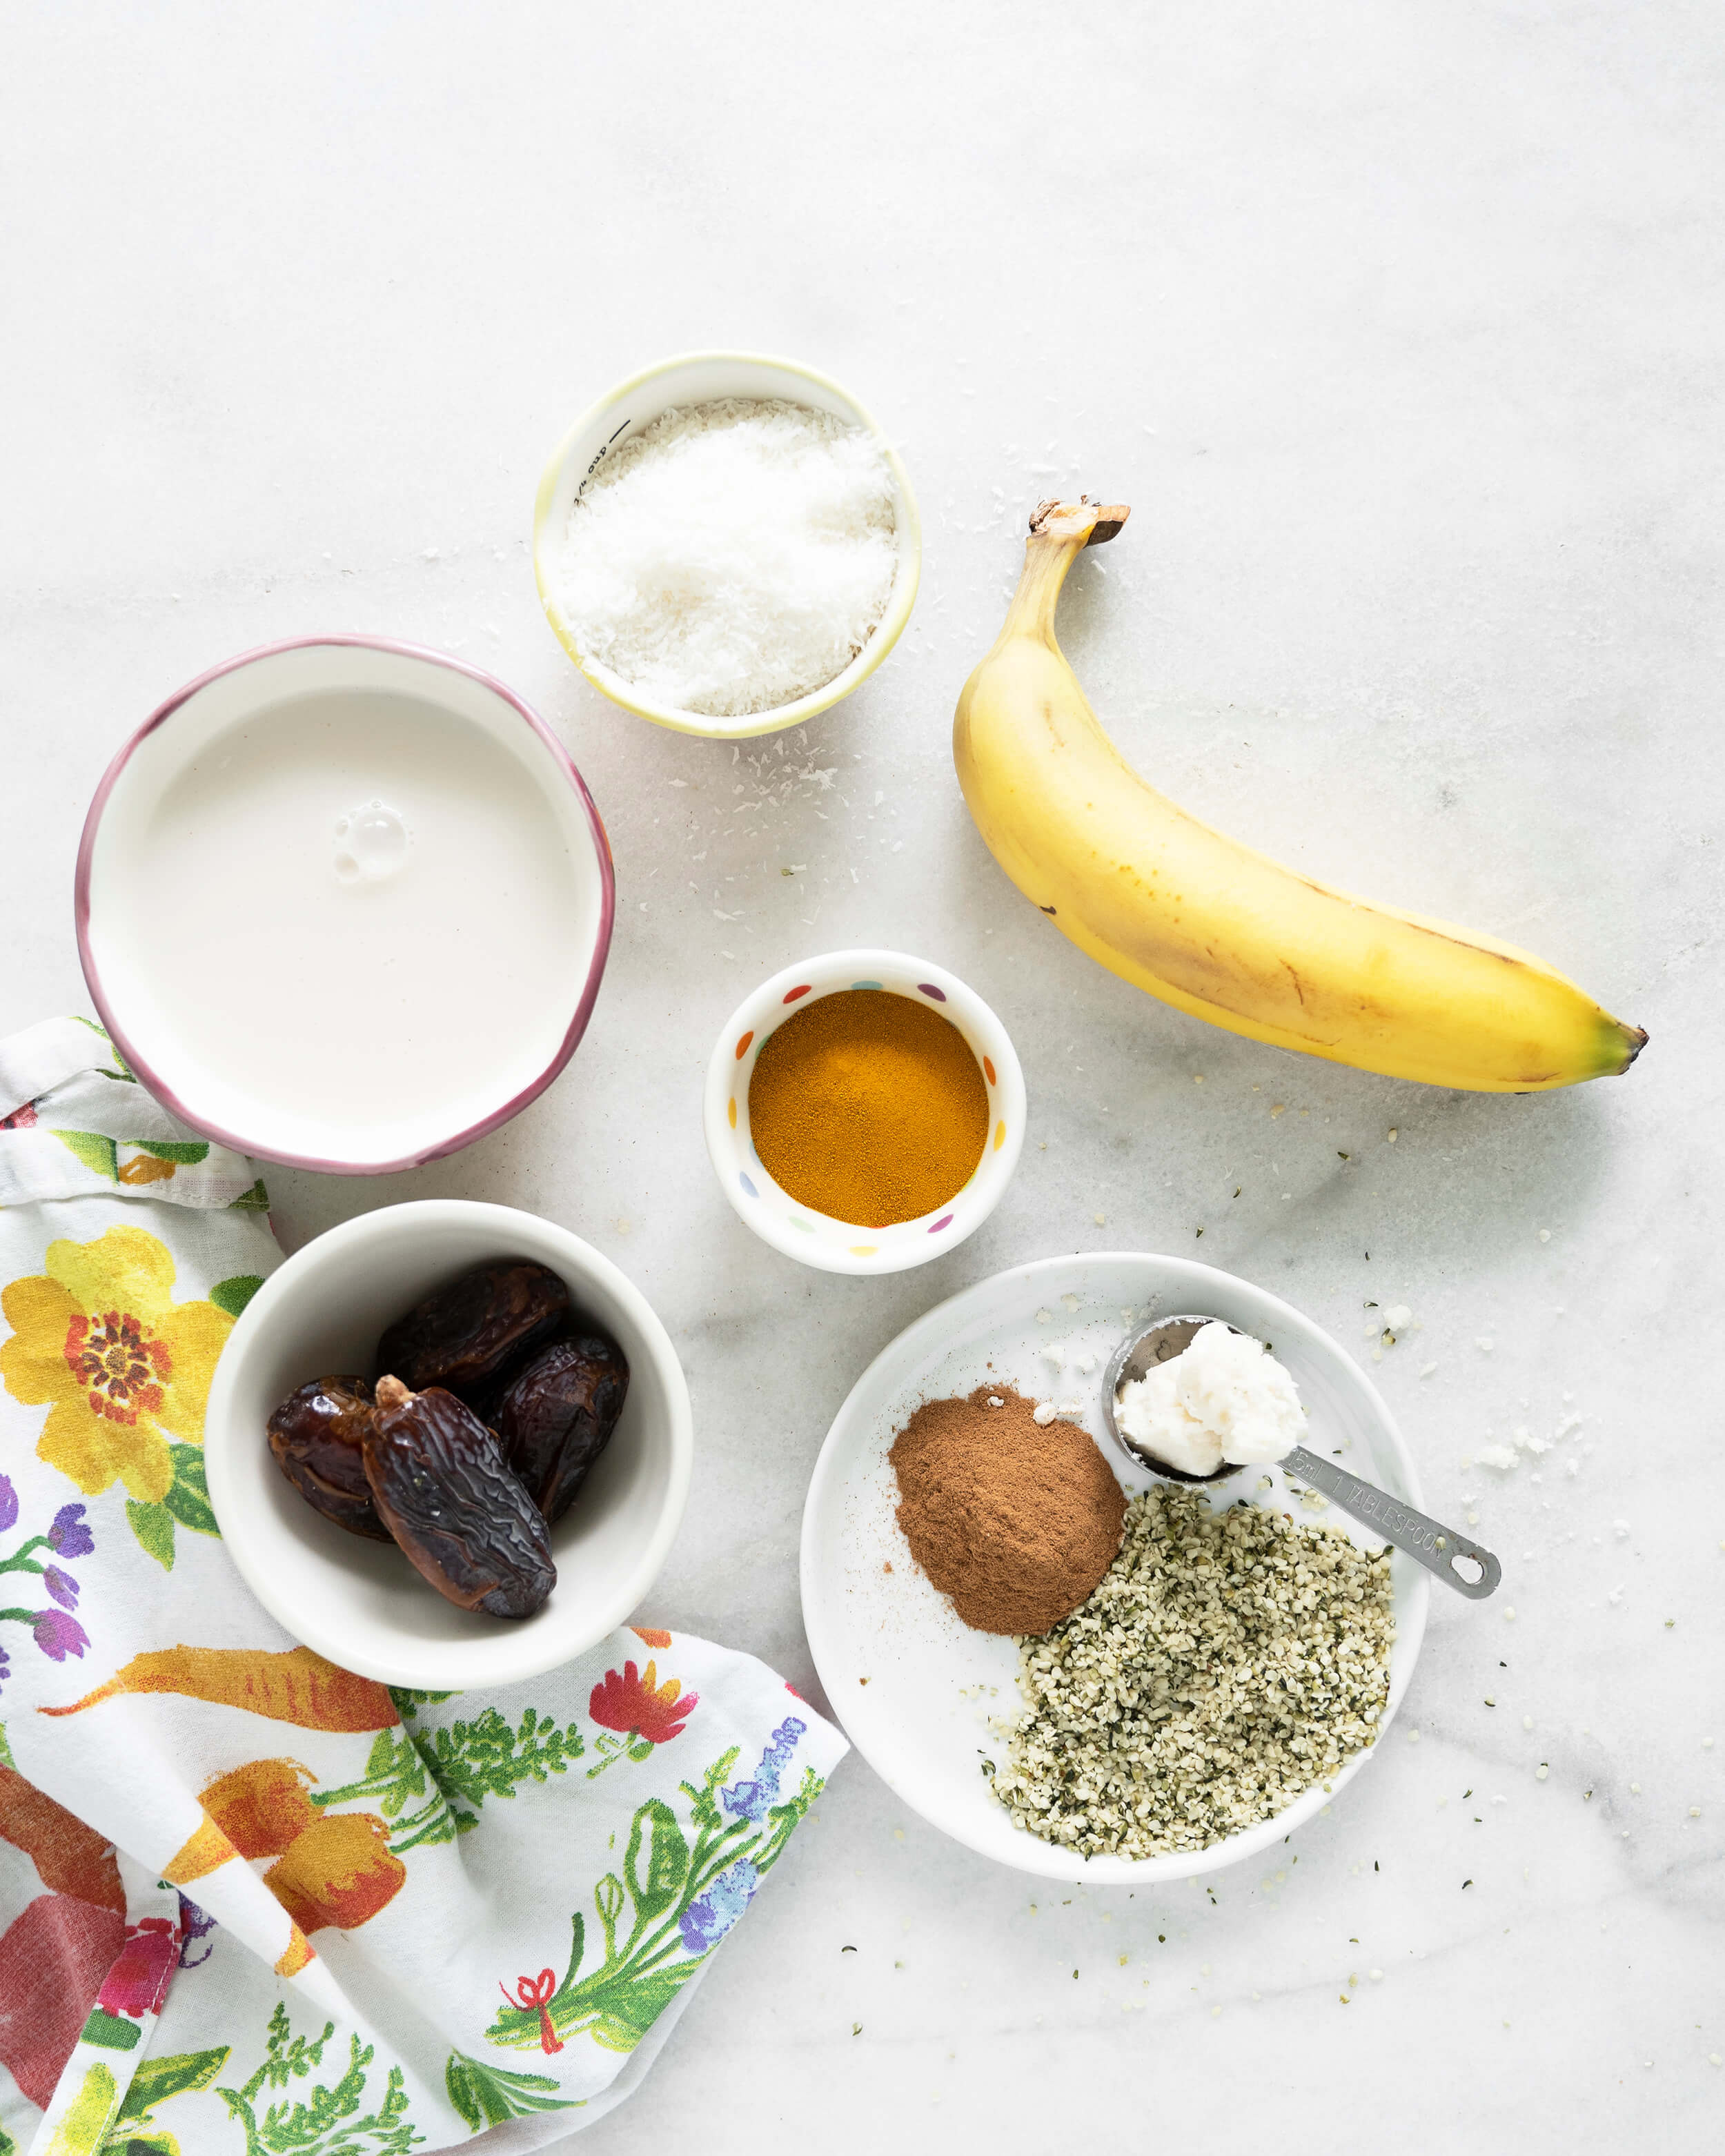 Golden Smoothie Ingredients